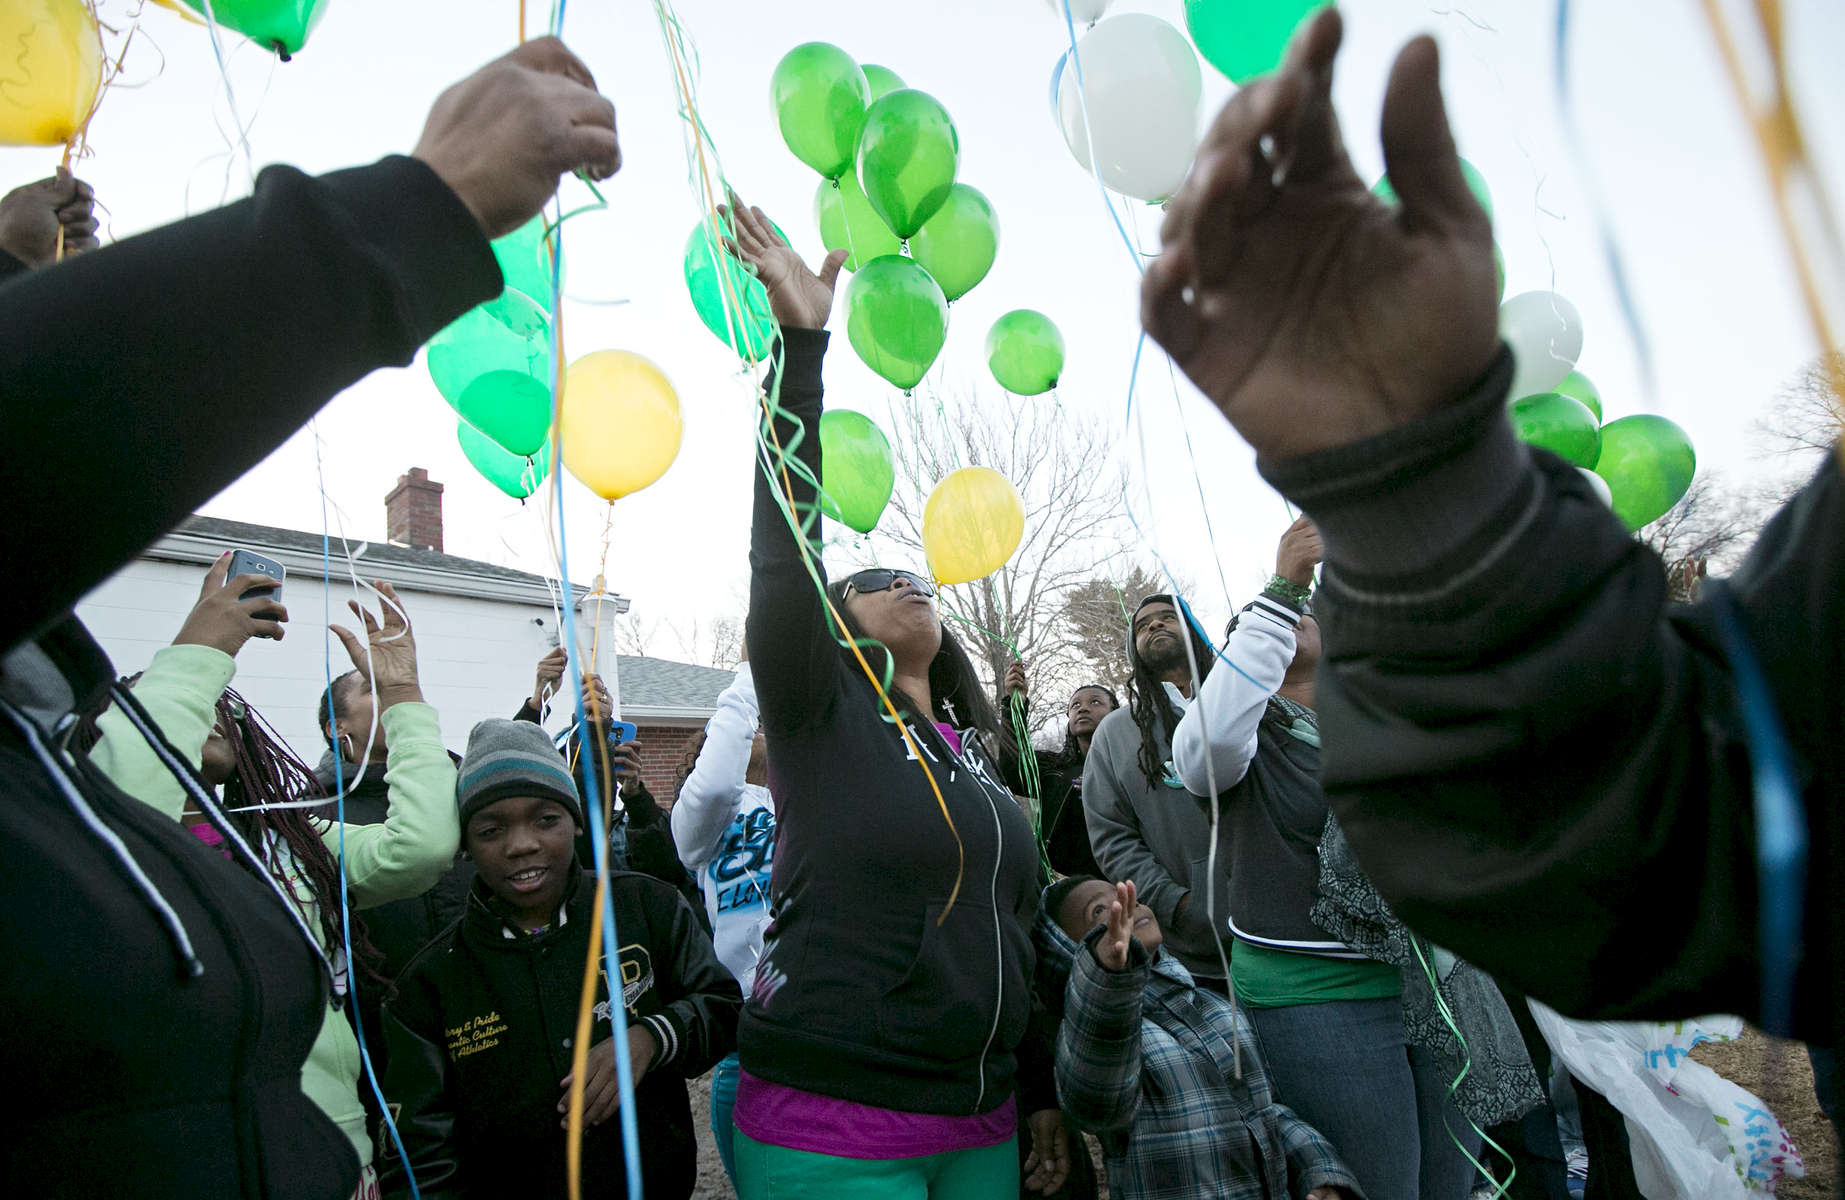 Shenelle Burgess (center) releases balloons with her family and friends at the grave of her son Pierre Childs at New Bethlehem Cemetery on Wednesday, March 5, 2014.  Police believe that Childs,16, was the unintended victim of a shooting on May, 7, 2013.  The family of Childs has been helped through the grieving and police investigation process by a minister assigned to the family by the police department.  The family gathered to release balloons to mark what would have been Childs' 17th birthday.  To date no one has been charged with Childs' murder.Photo By David Carson, dcarson@post-dispatch.com